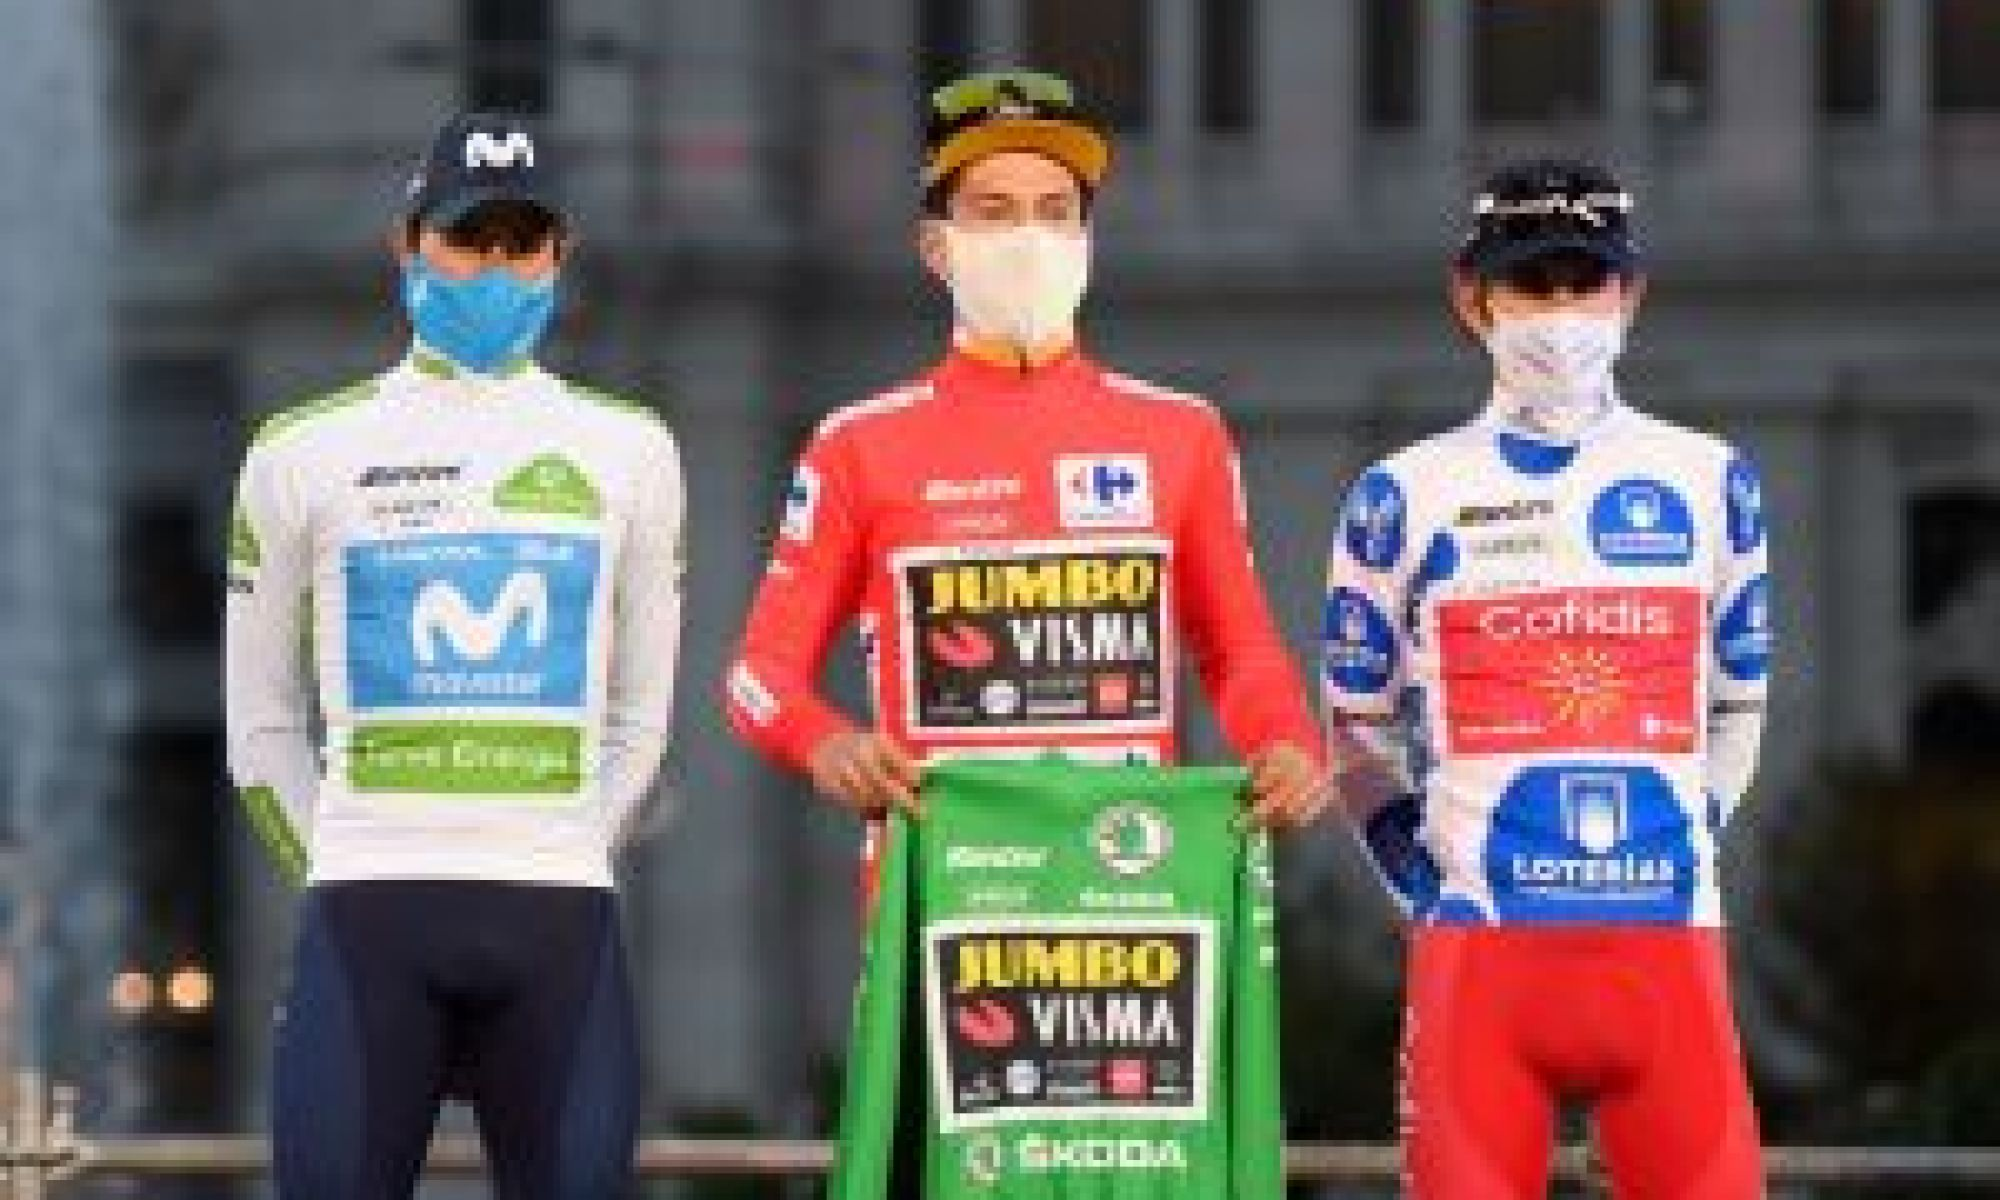 Vuelta a España standings: Final results from the 2020 race